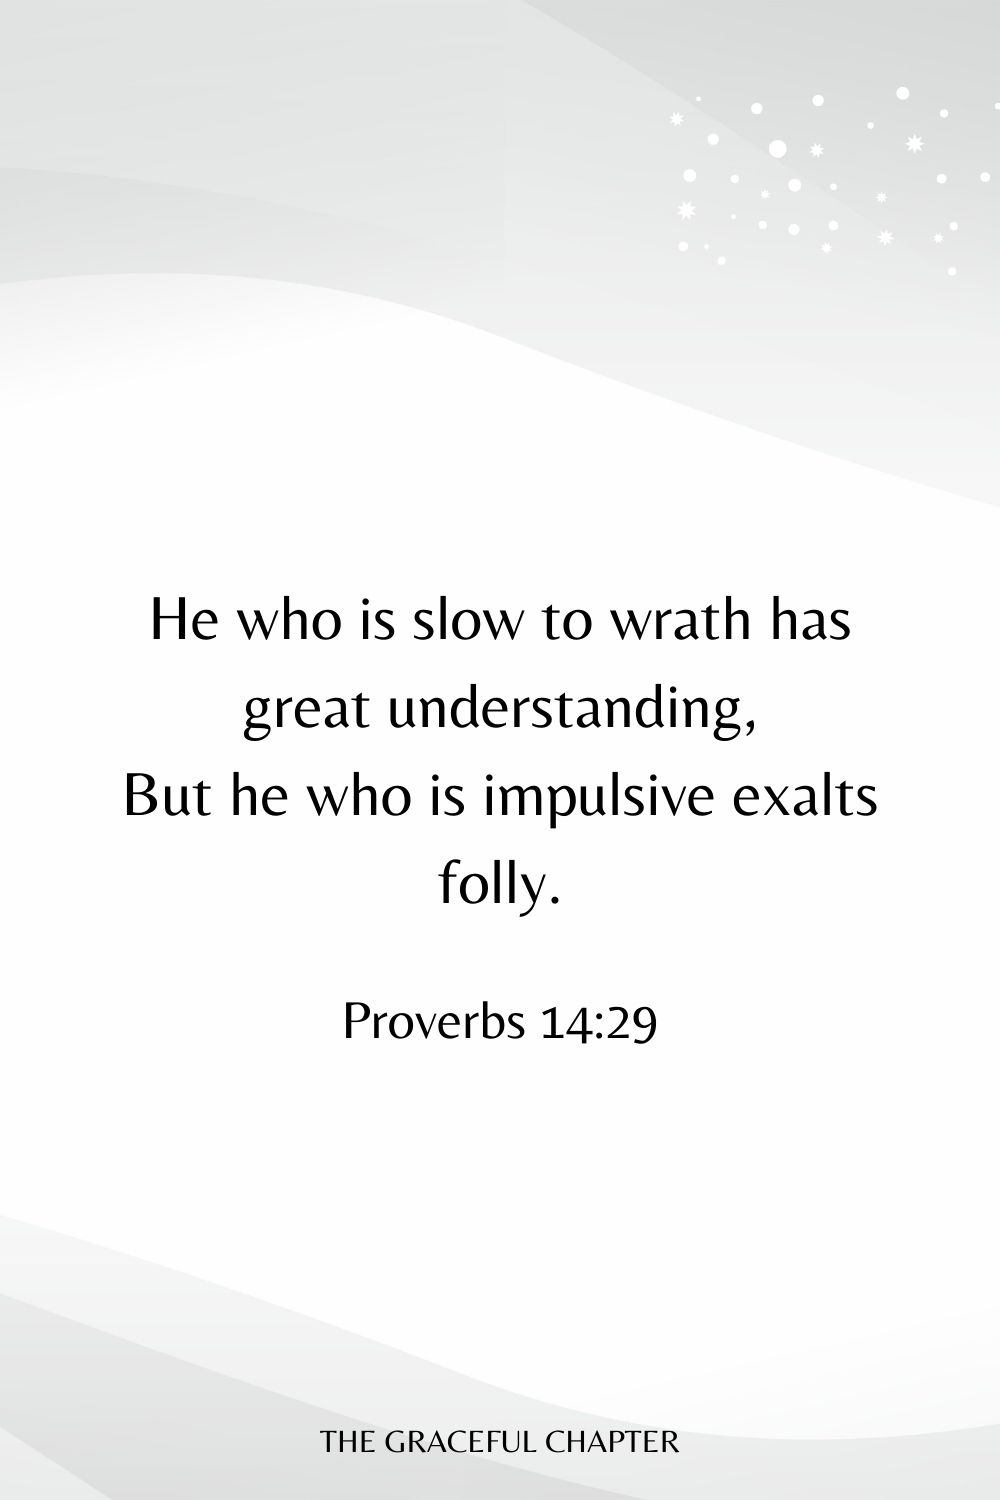 He who is slow to wrath has great understanding, But he who is impulsive exalts folly. Proverbs 14:29